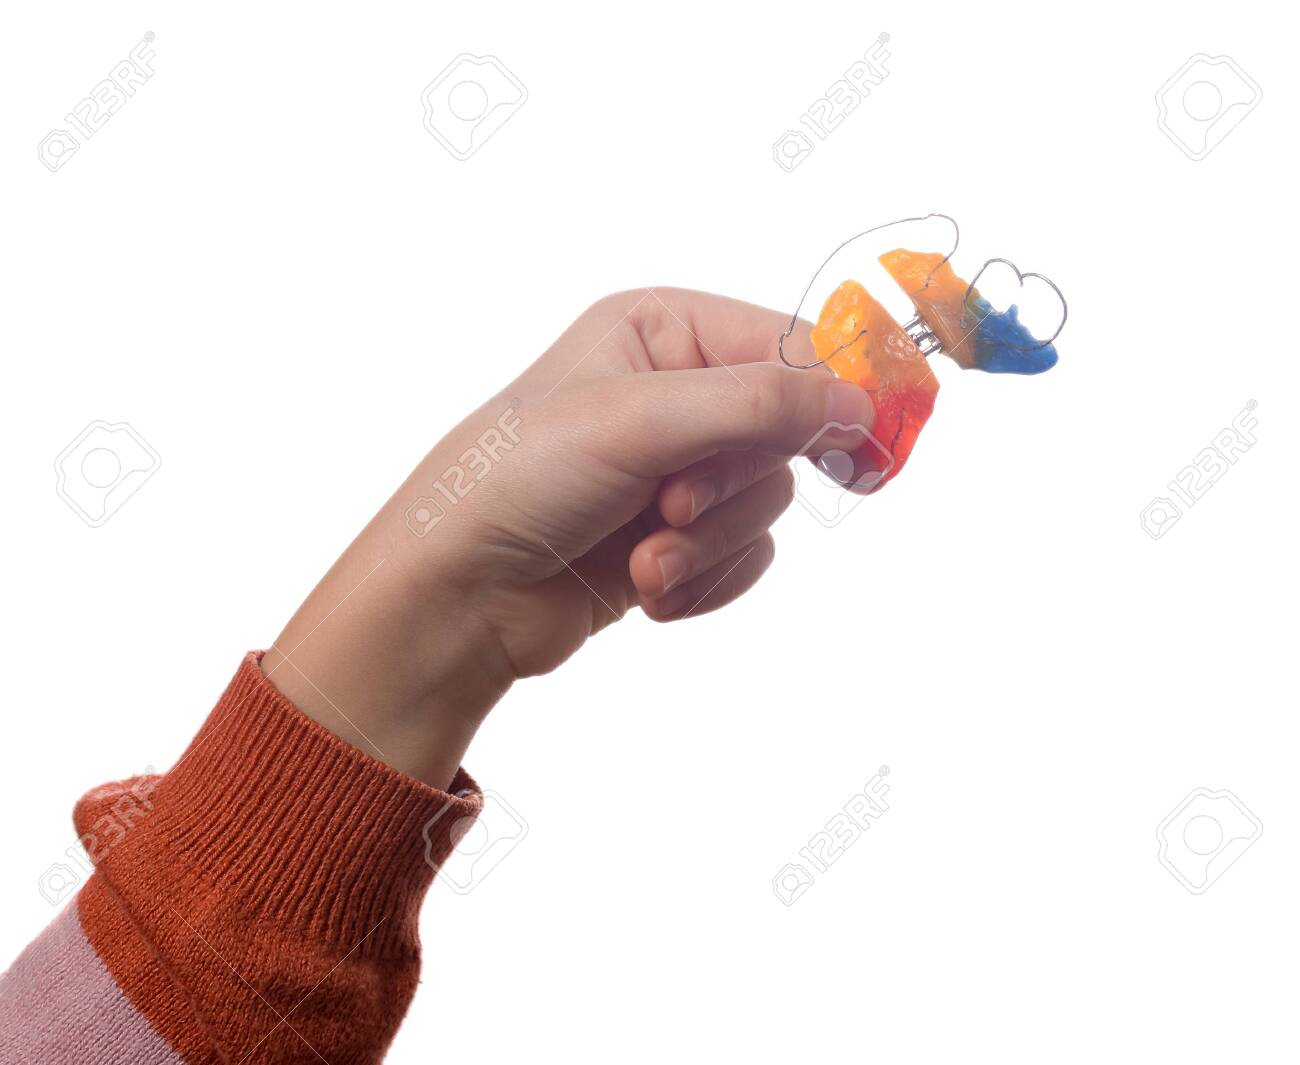 Child's hand with orthodontic appliance isolated on a white background - 146946344